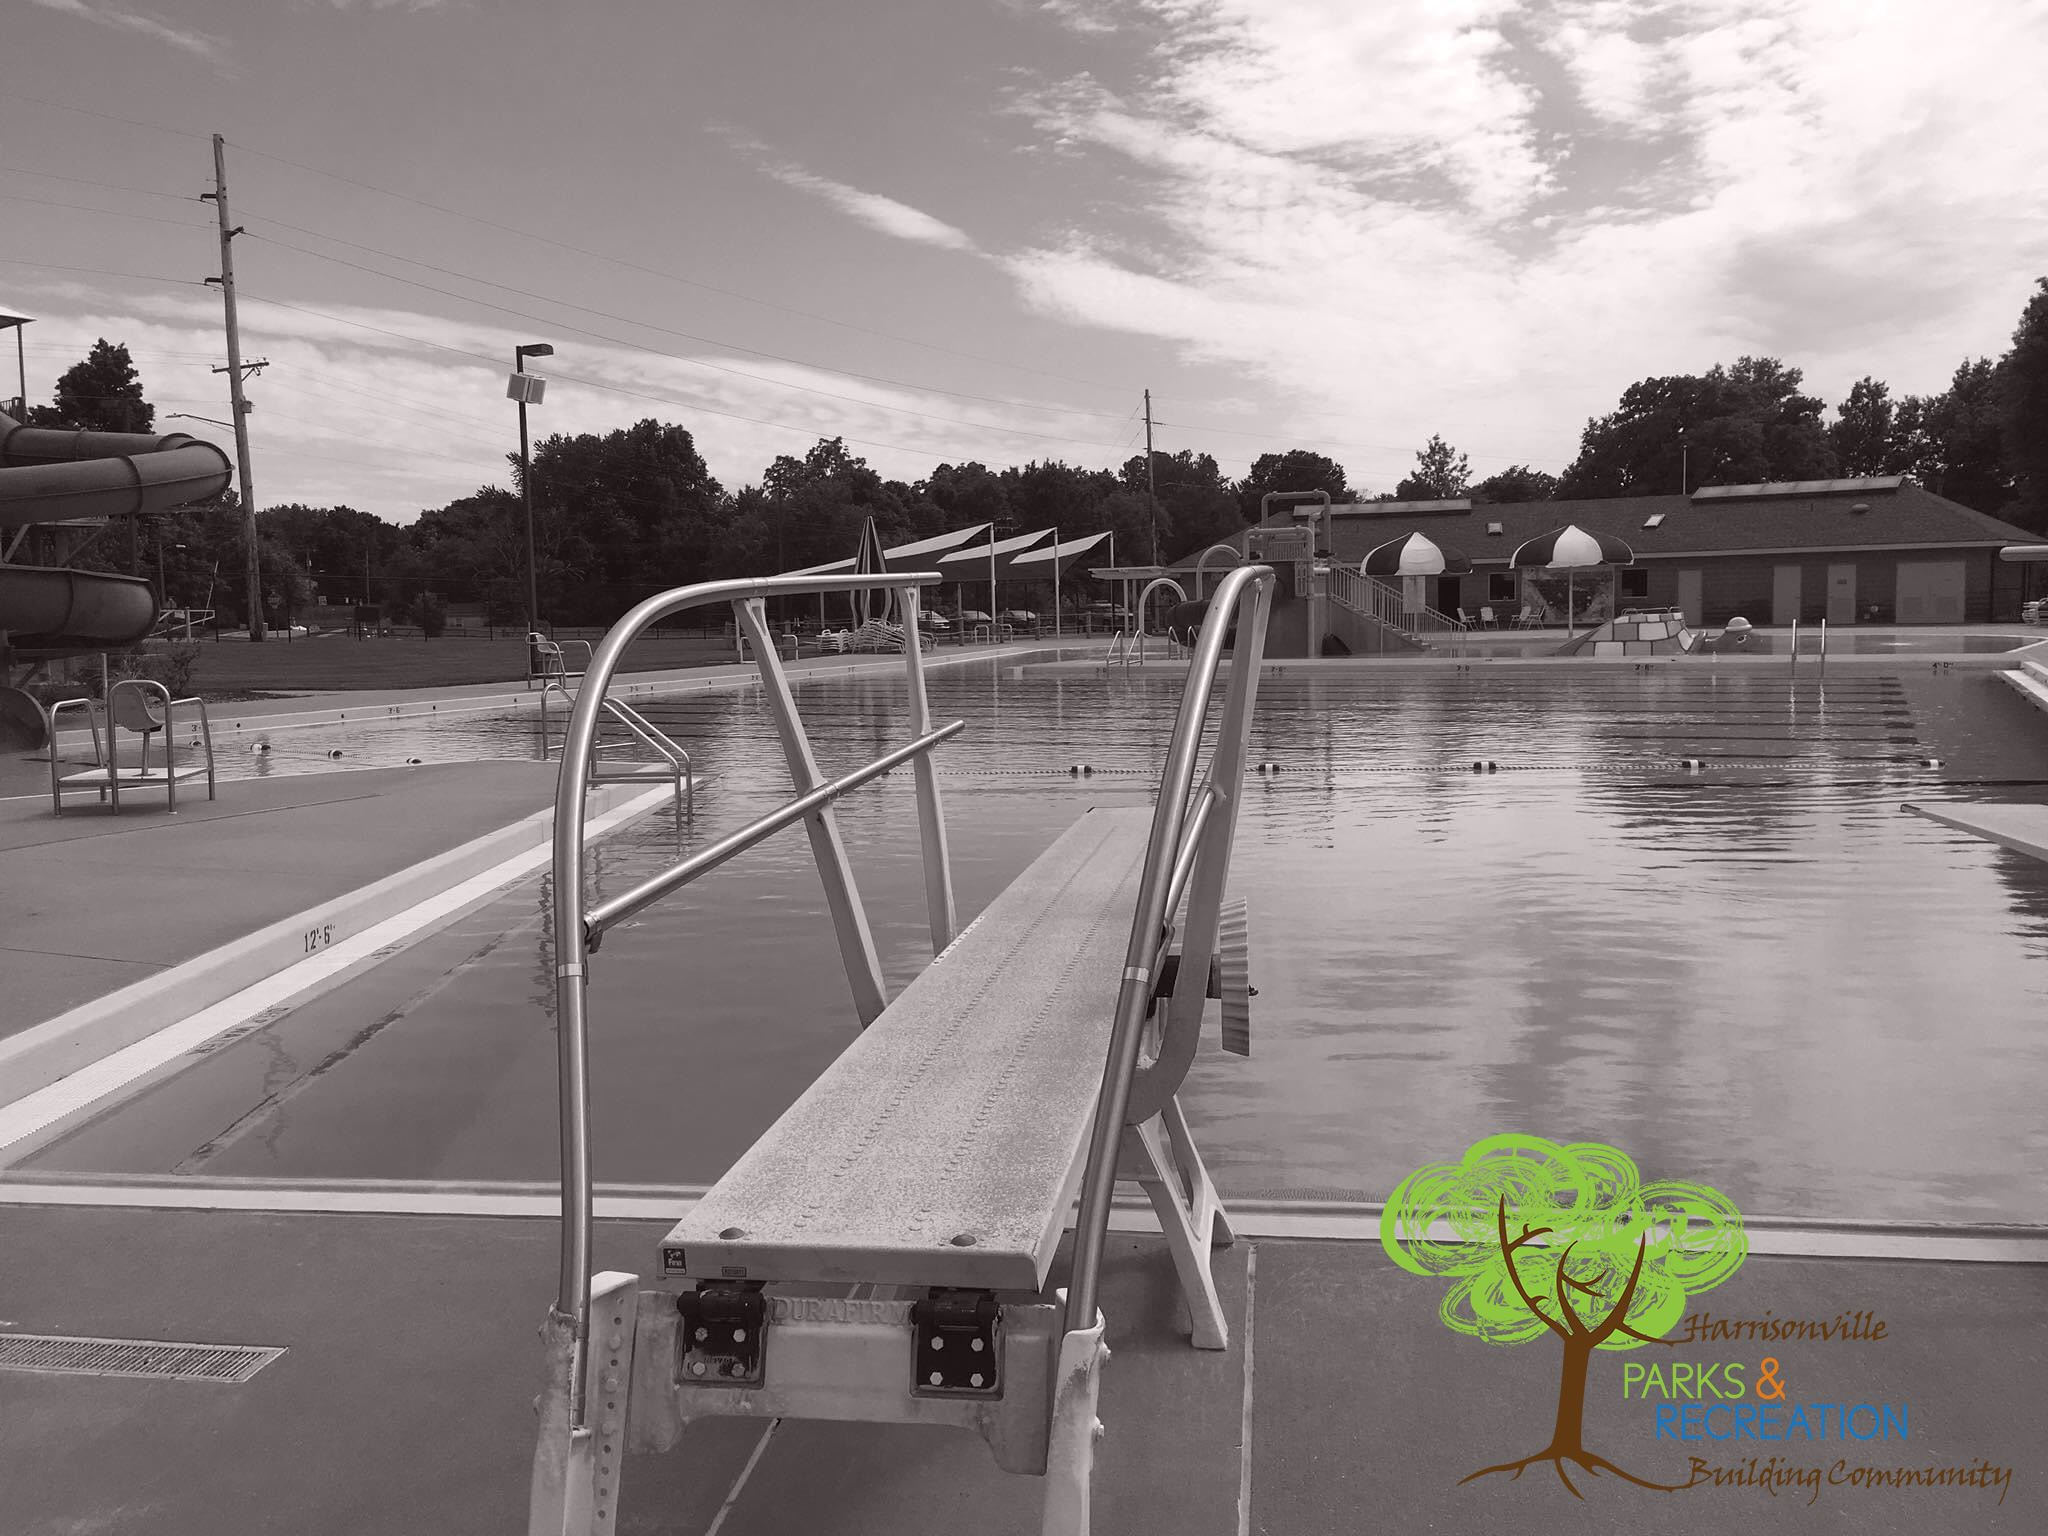 Black and white Harrisonville Aquatic Center with PR logo